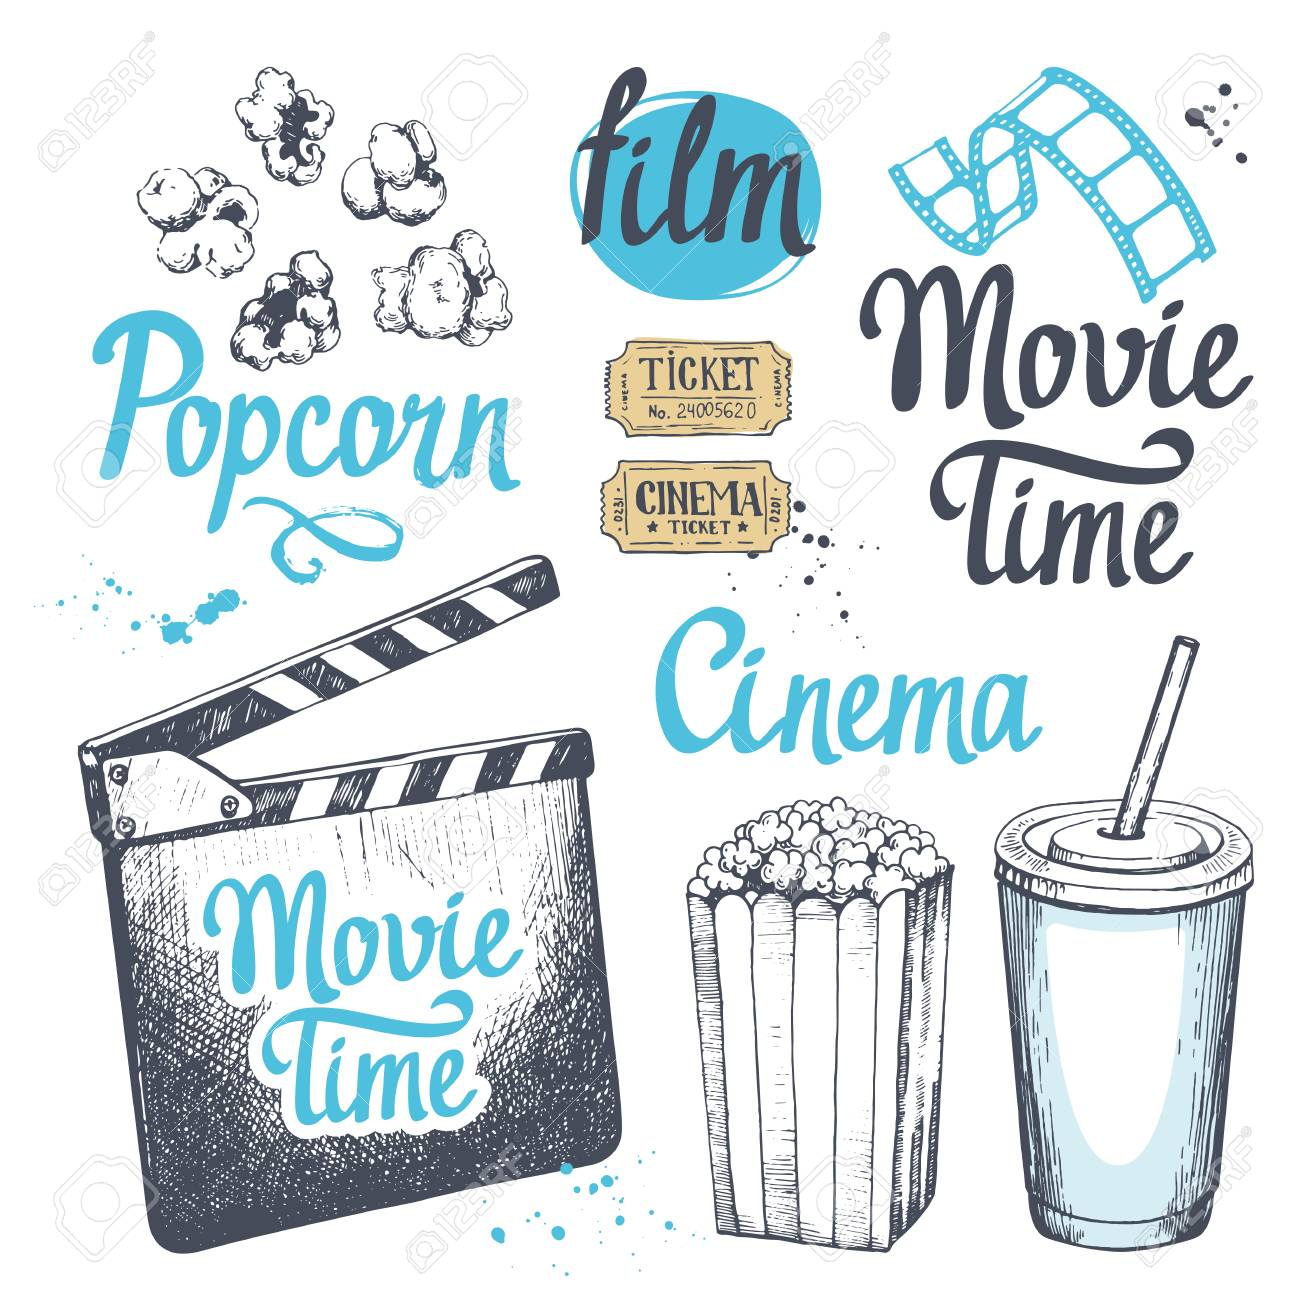 Movie time vector illustration with sketch popcorn bucket, illustration,